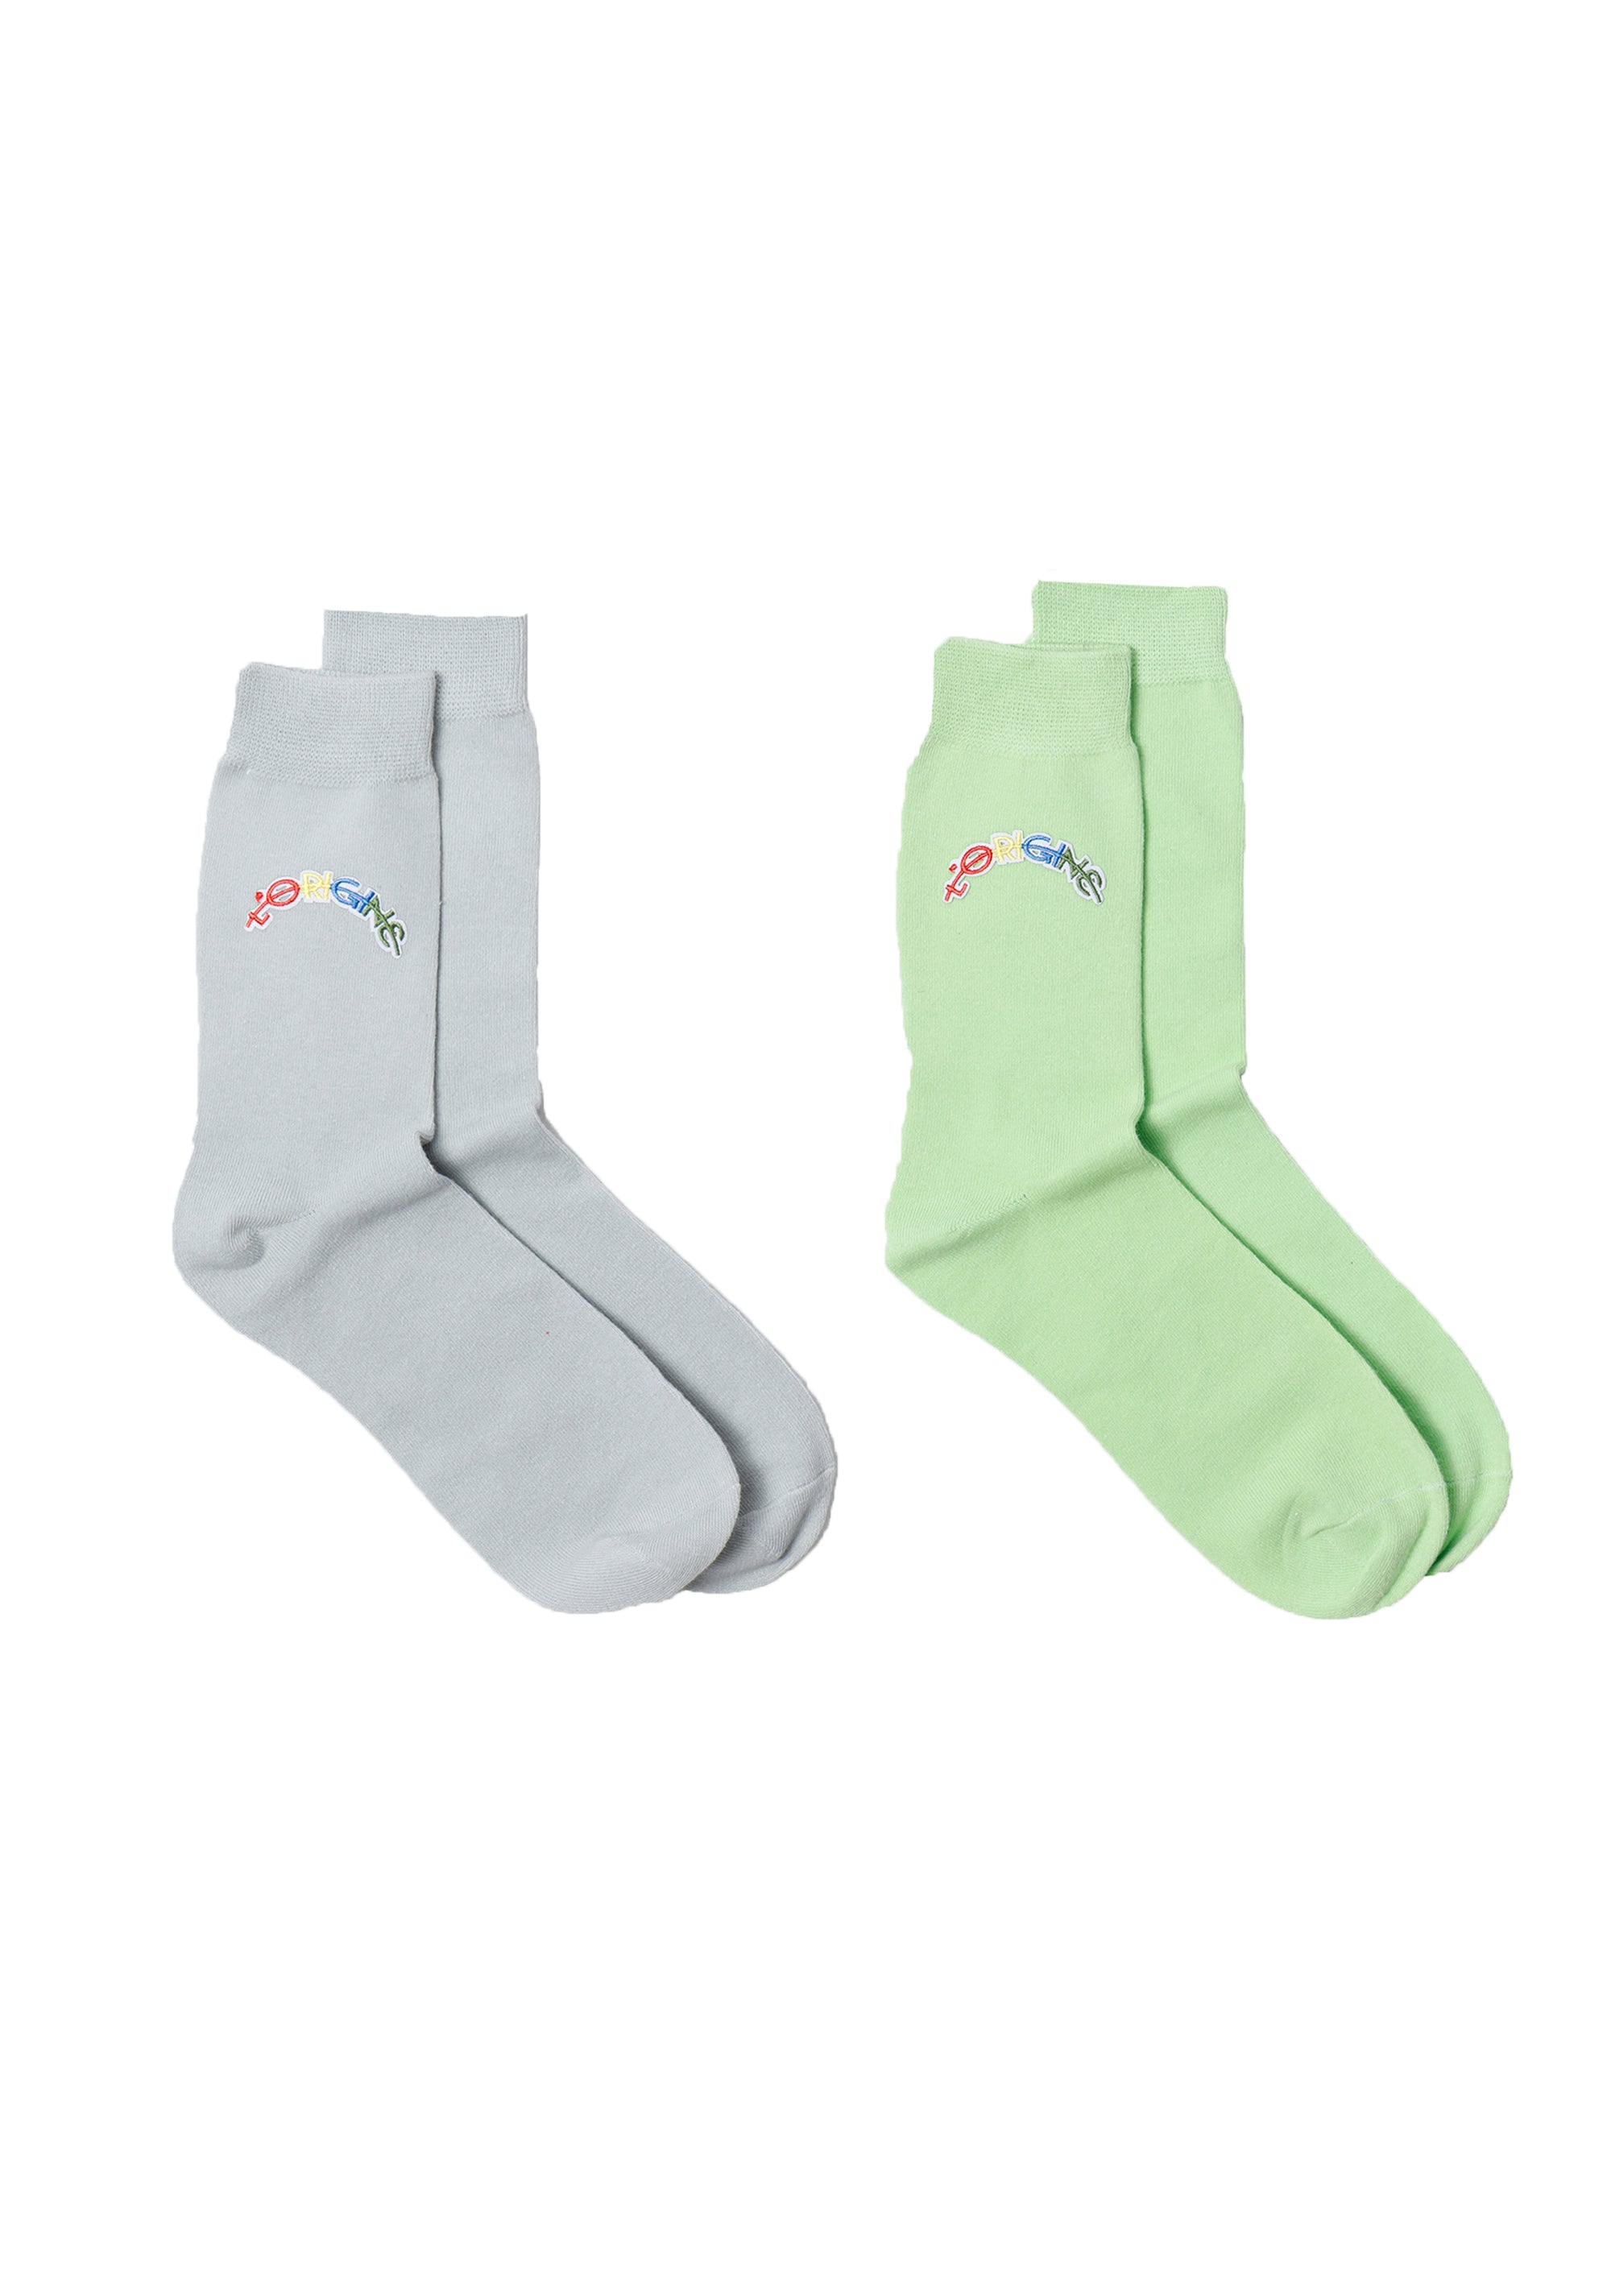 Socks L'origine Rainbow 2 pack